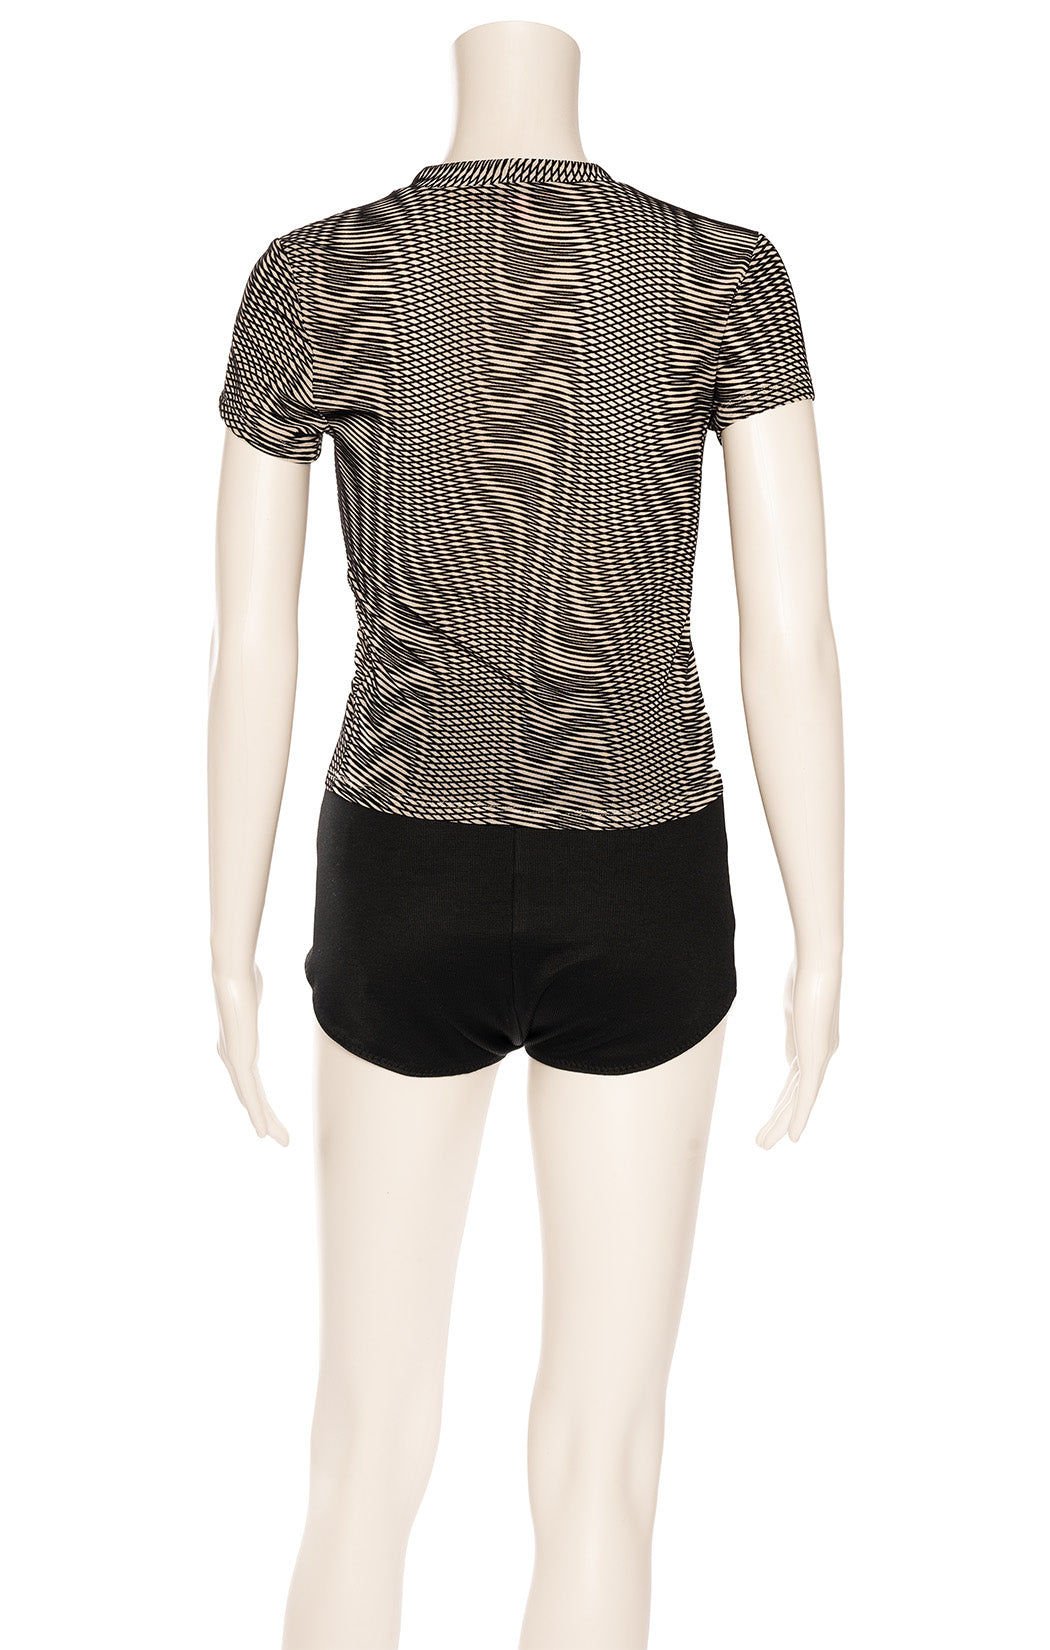 Black and beige textured patterned top